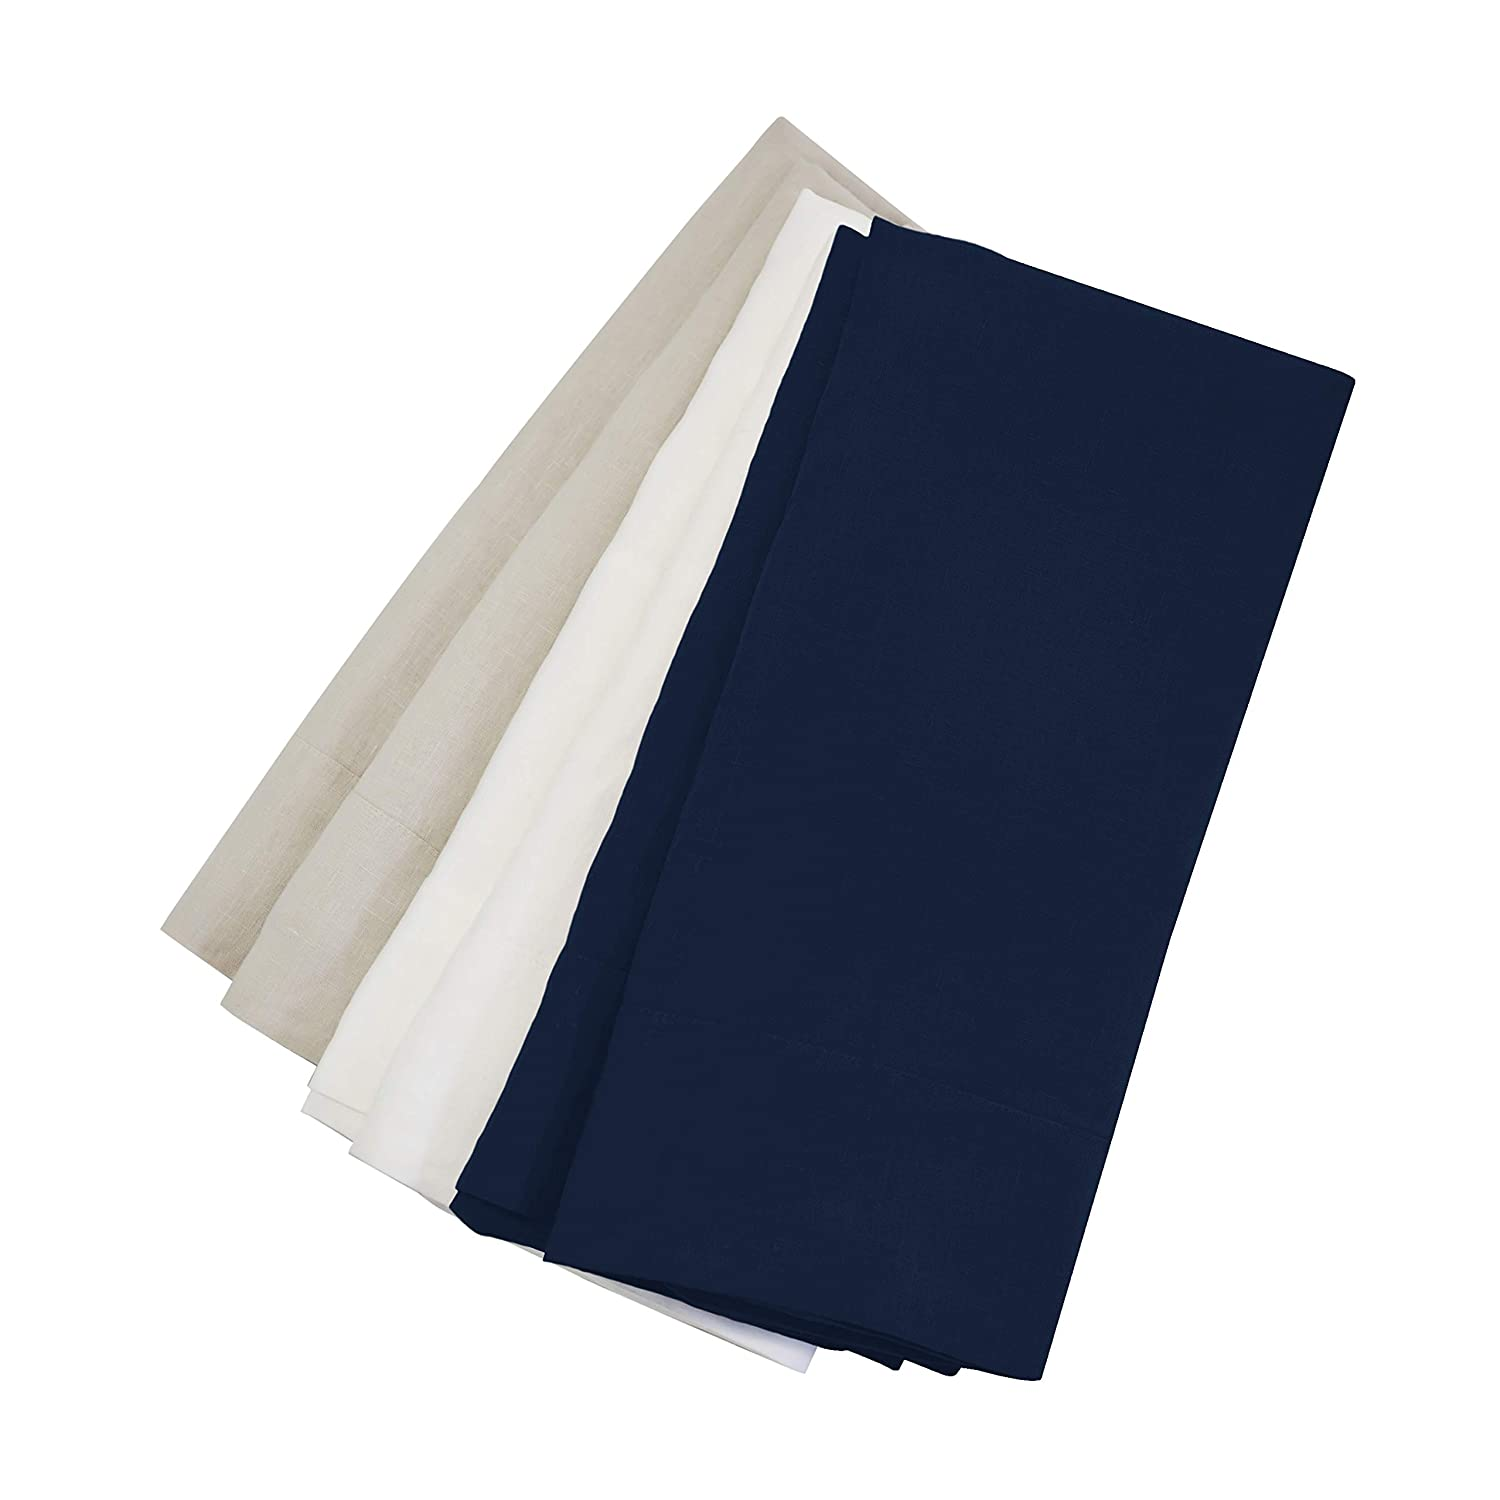 Scala Bedskrit80010inchA350 Queen Size, White Color Calico Homes ONLY 1 Piece BEDSKIRT 800 TC 100/% Egyptian Cotton 10 Drop Length